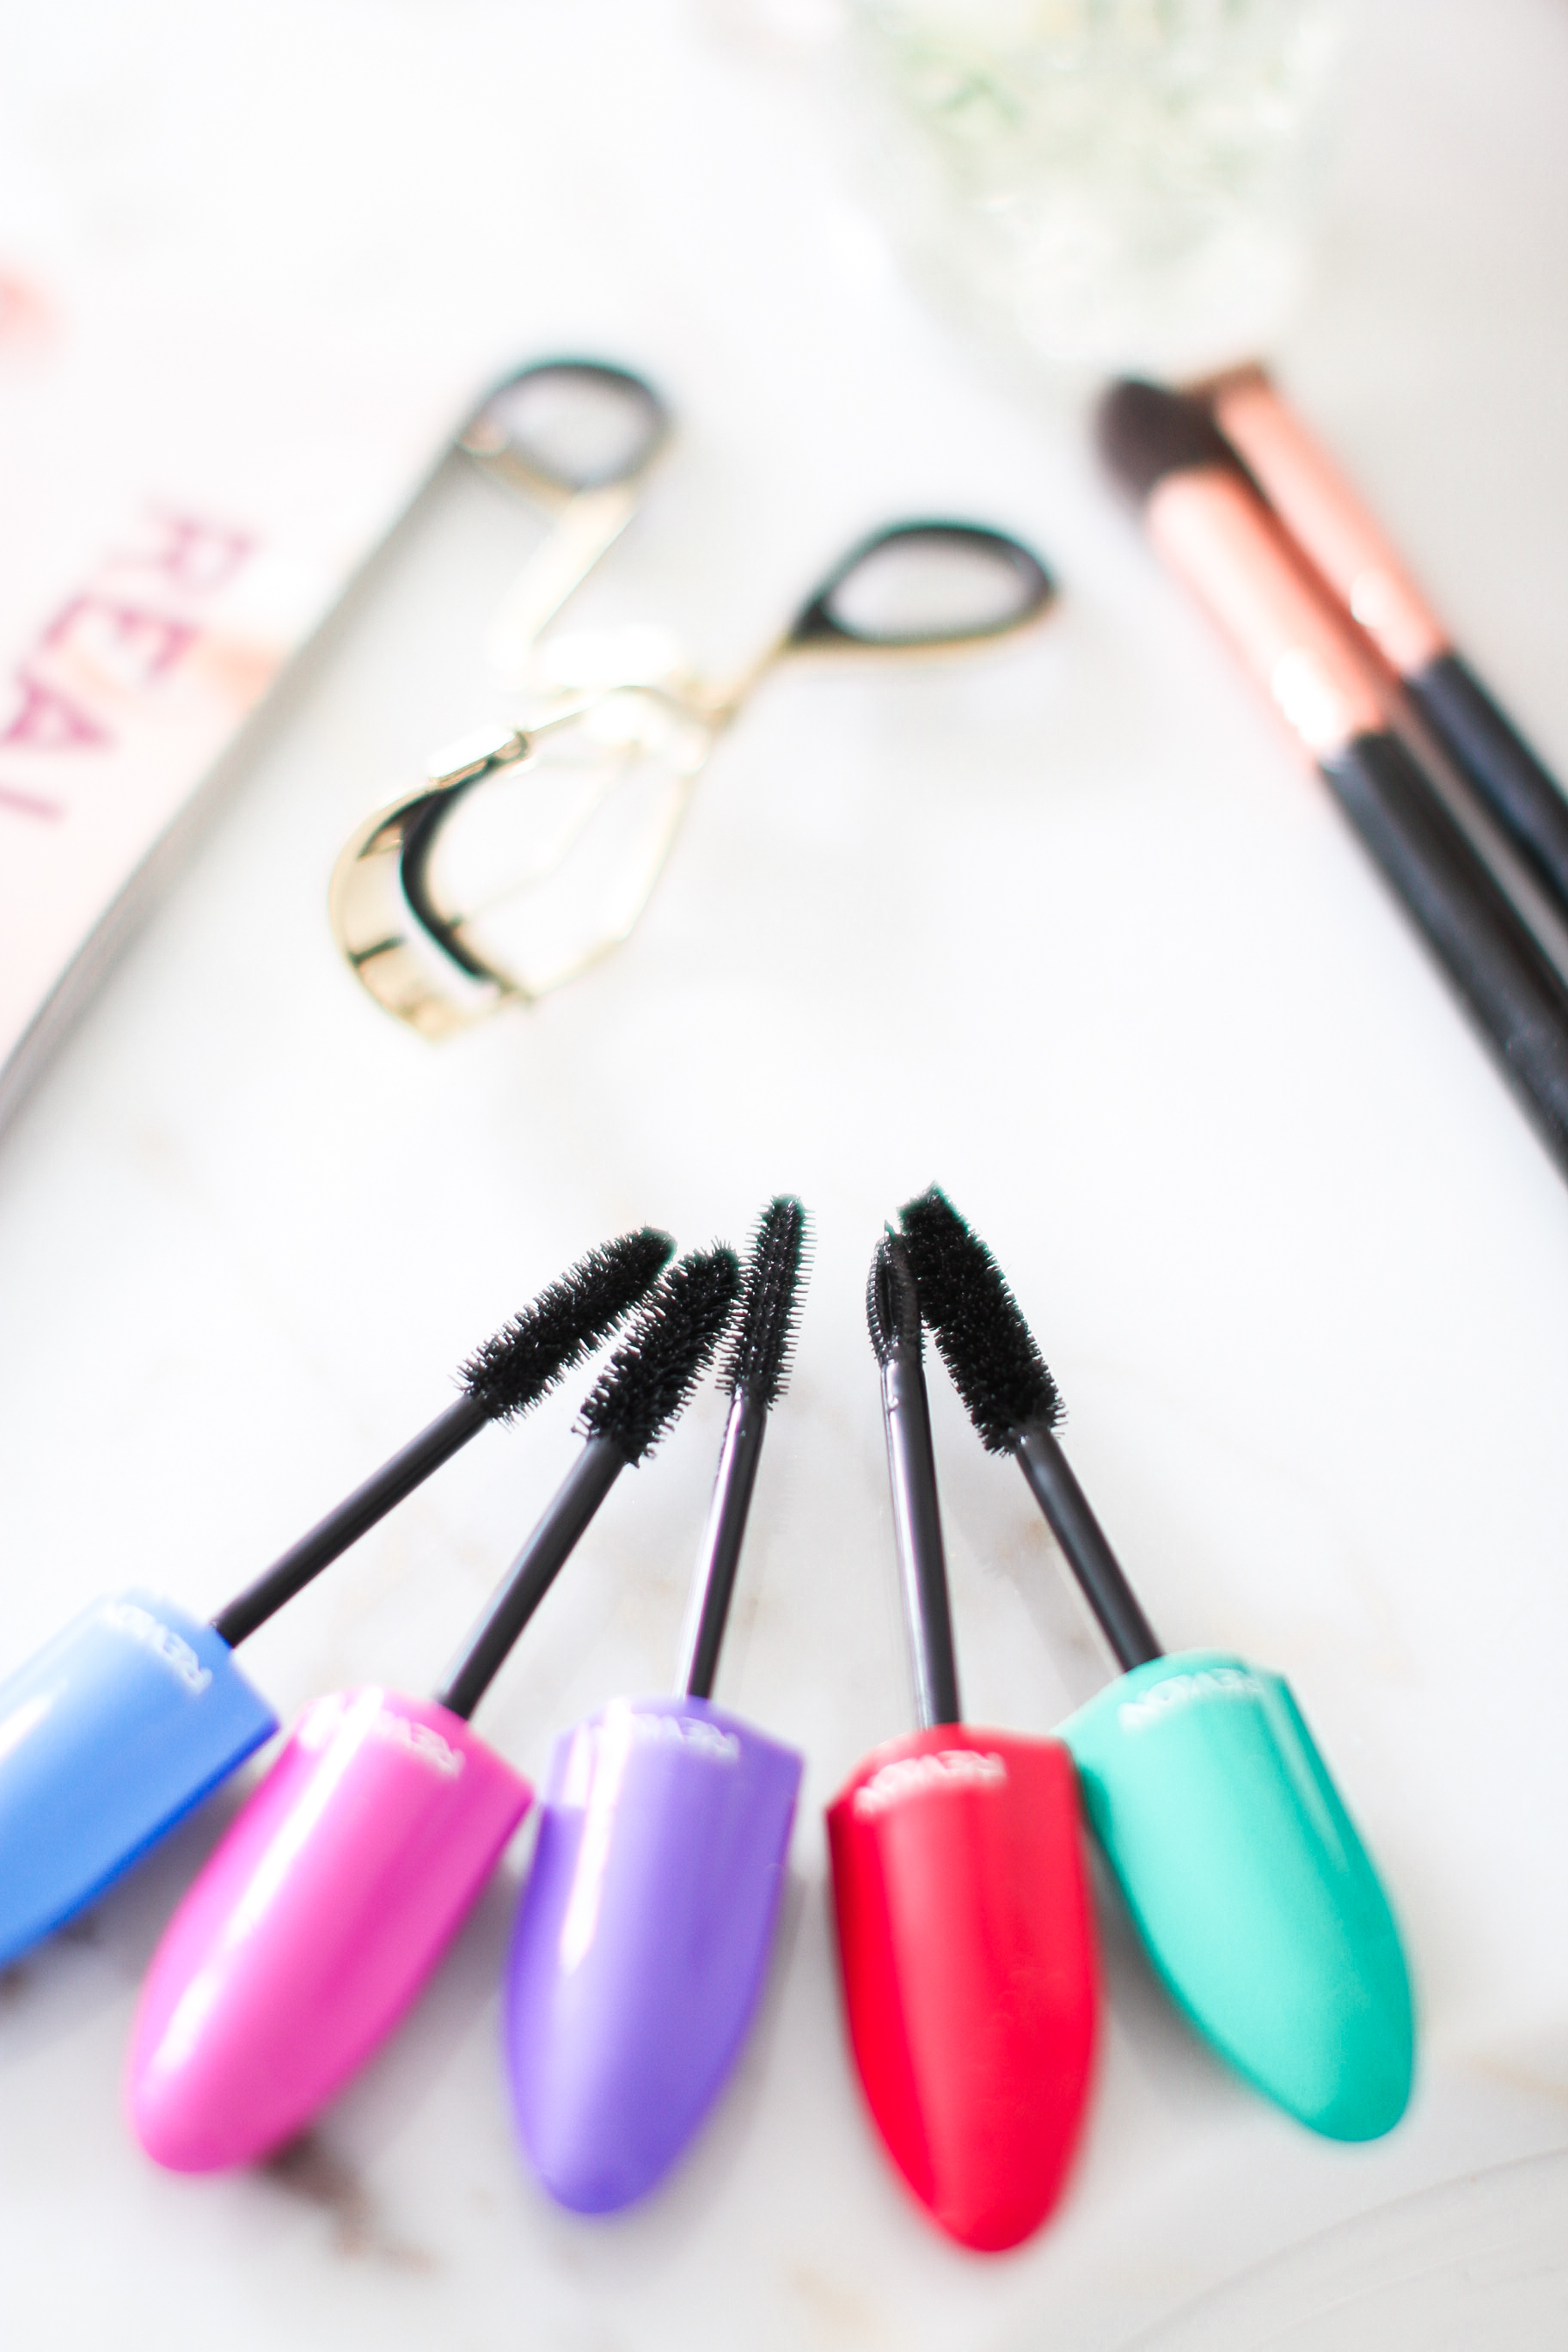 Revlon Drug Store Mascara Review